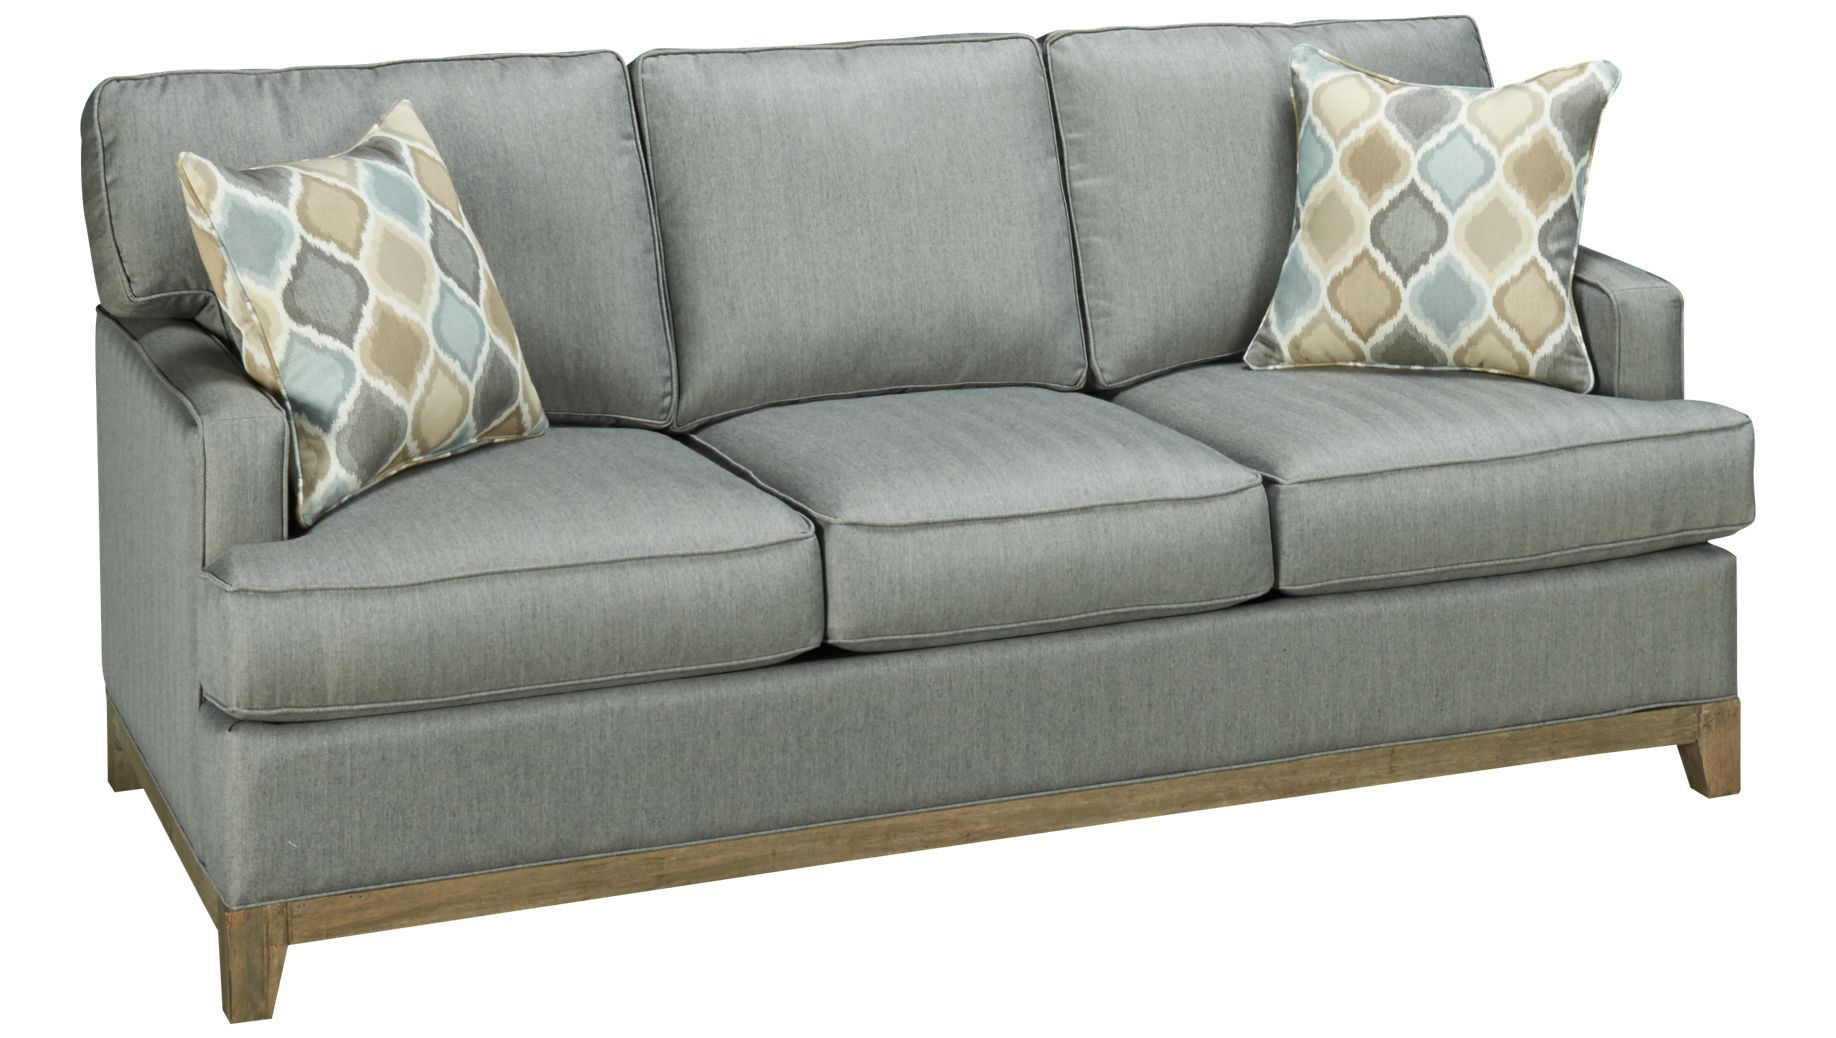 Attractive Capris Duke Duke Queen Sleeper Sofa   Jordanu0027s Furniture